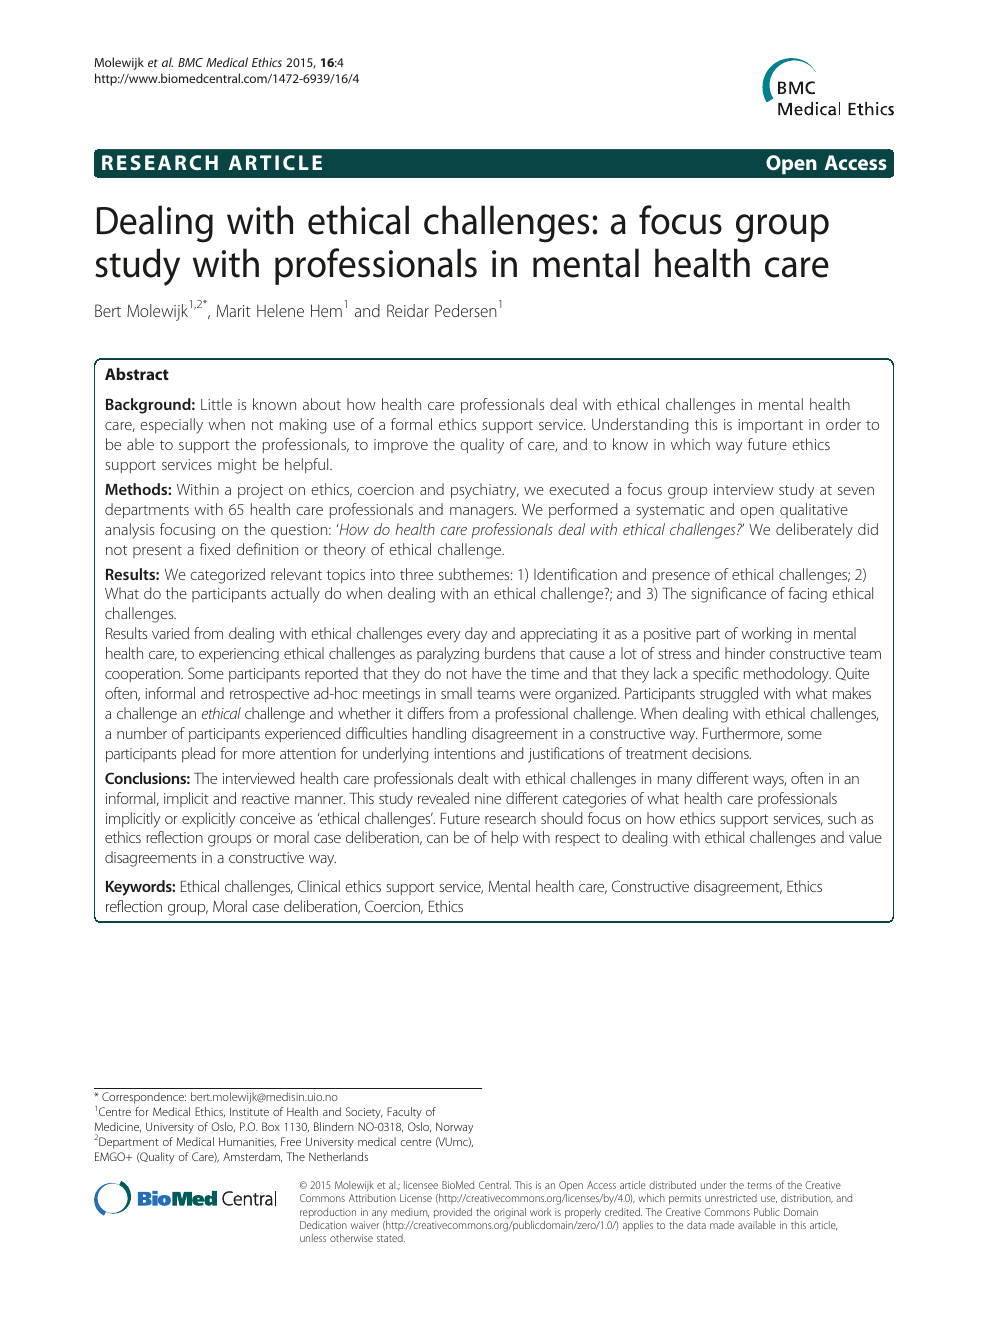 Dealing with ethical challenges: a focus group study with